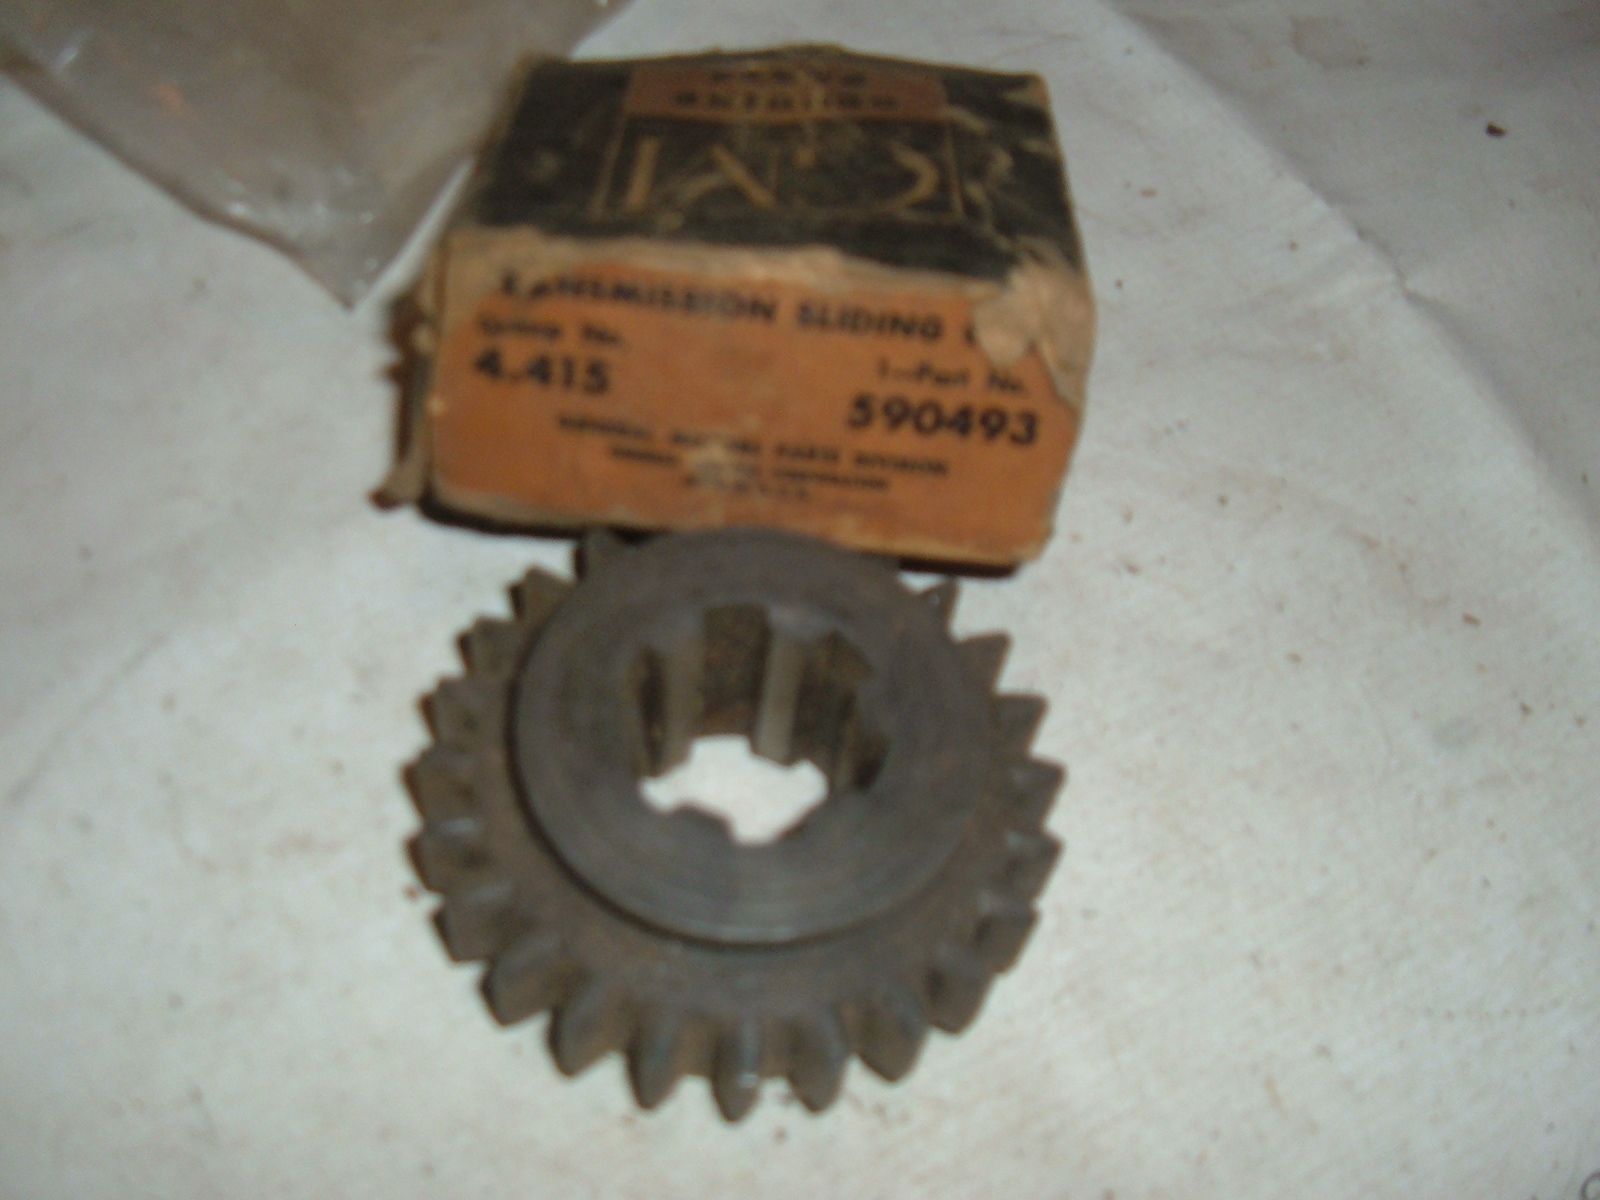 1933 35 37 37 39 40 41 46 47 chevrolet truck transmission 3rd & 4th gear nos gm 590493 (z 590493)